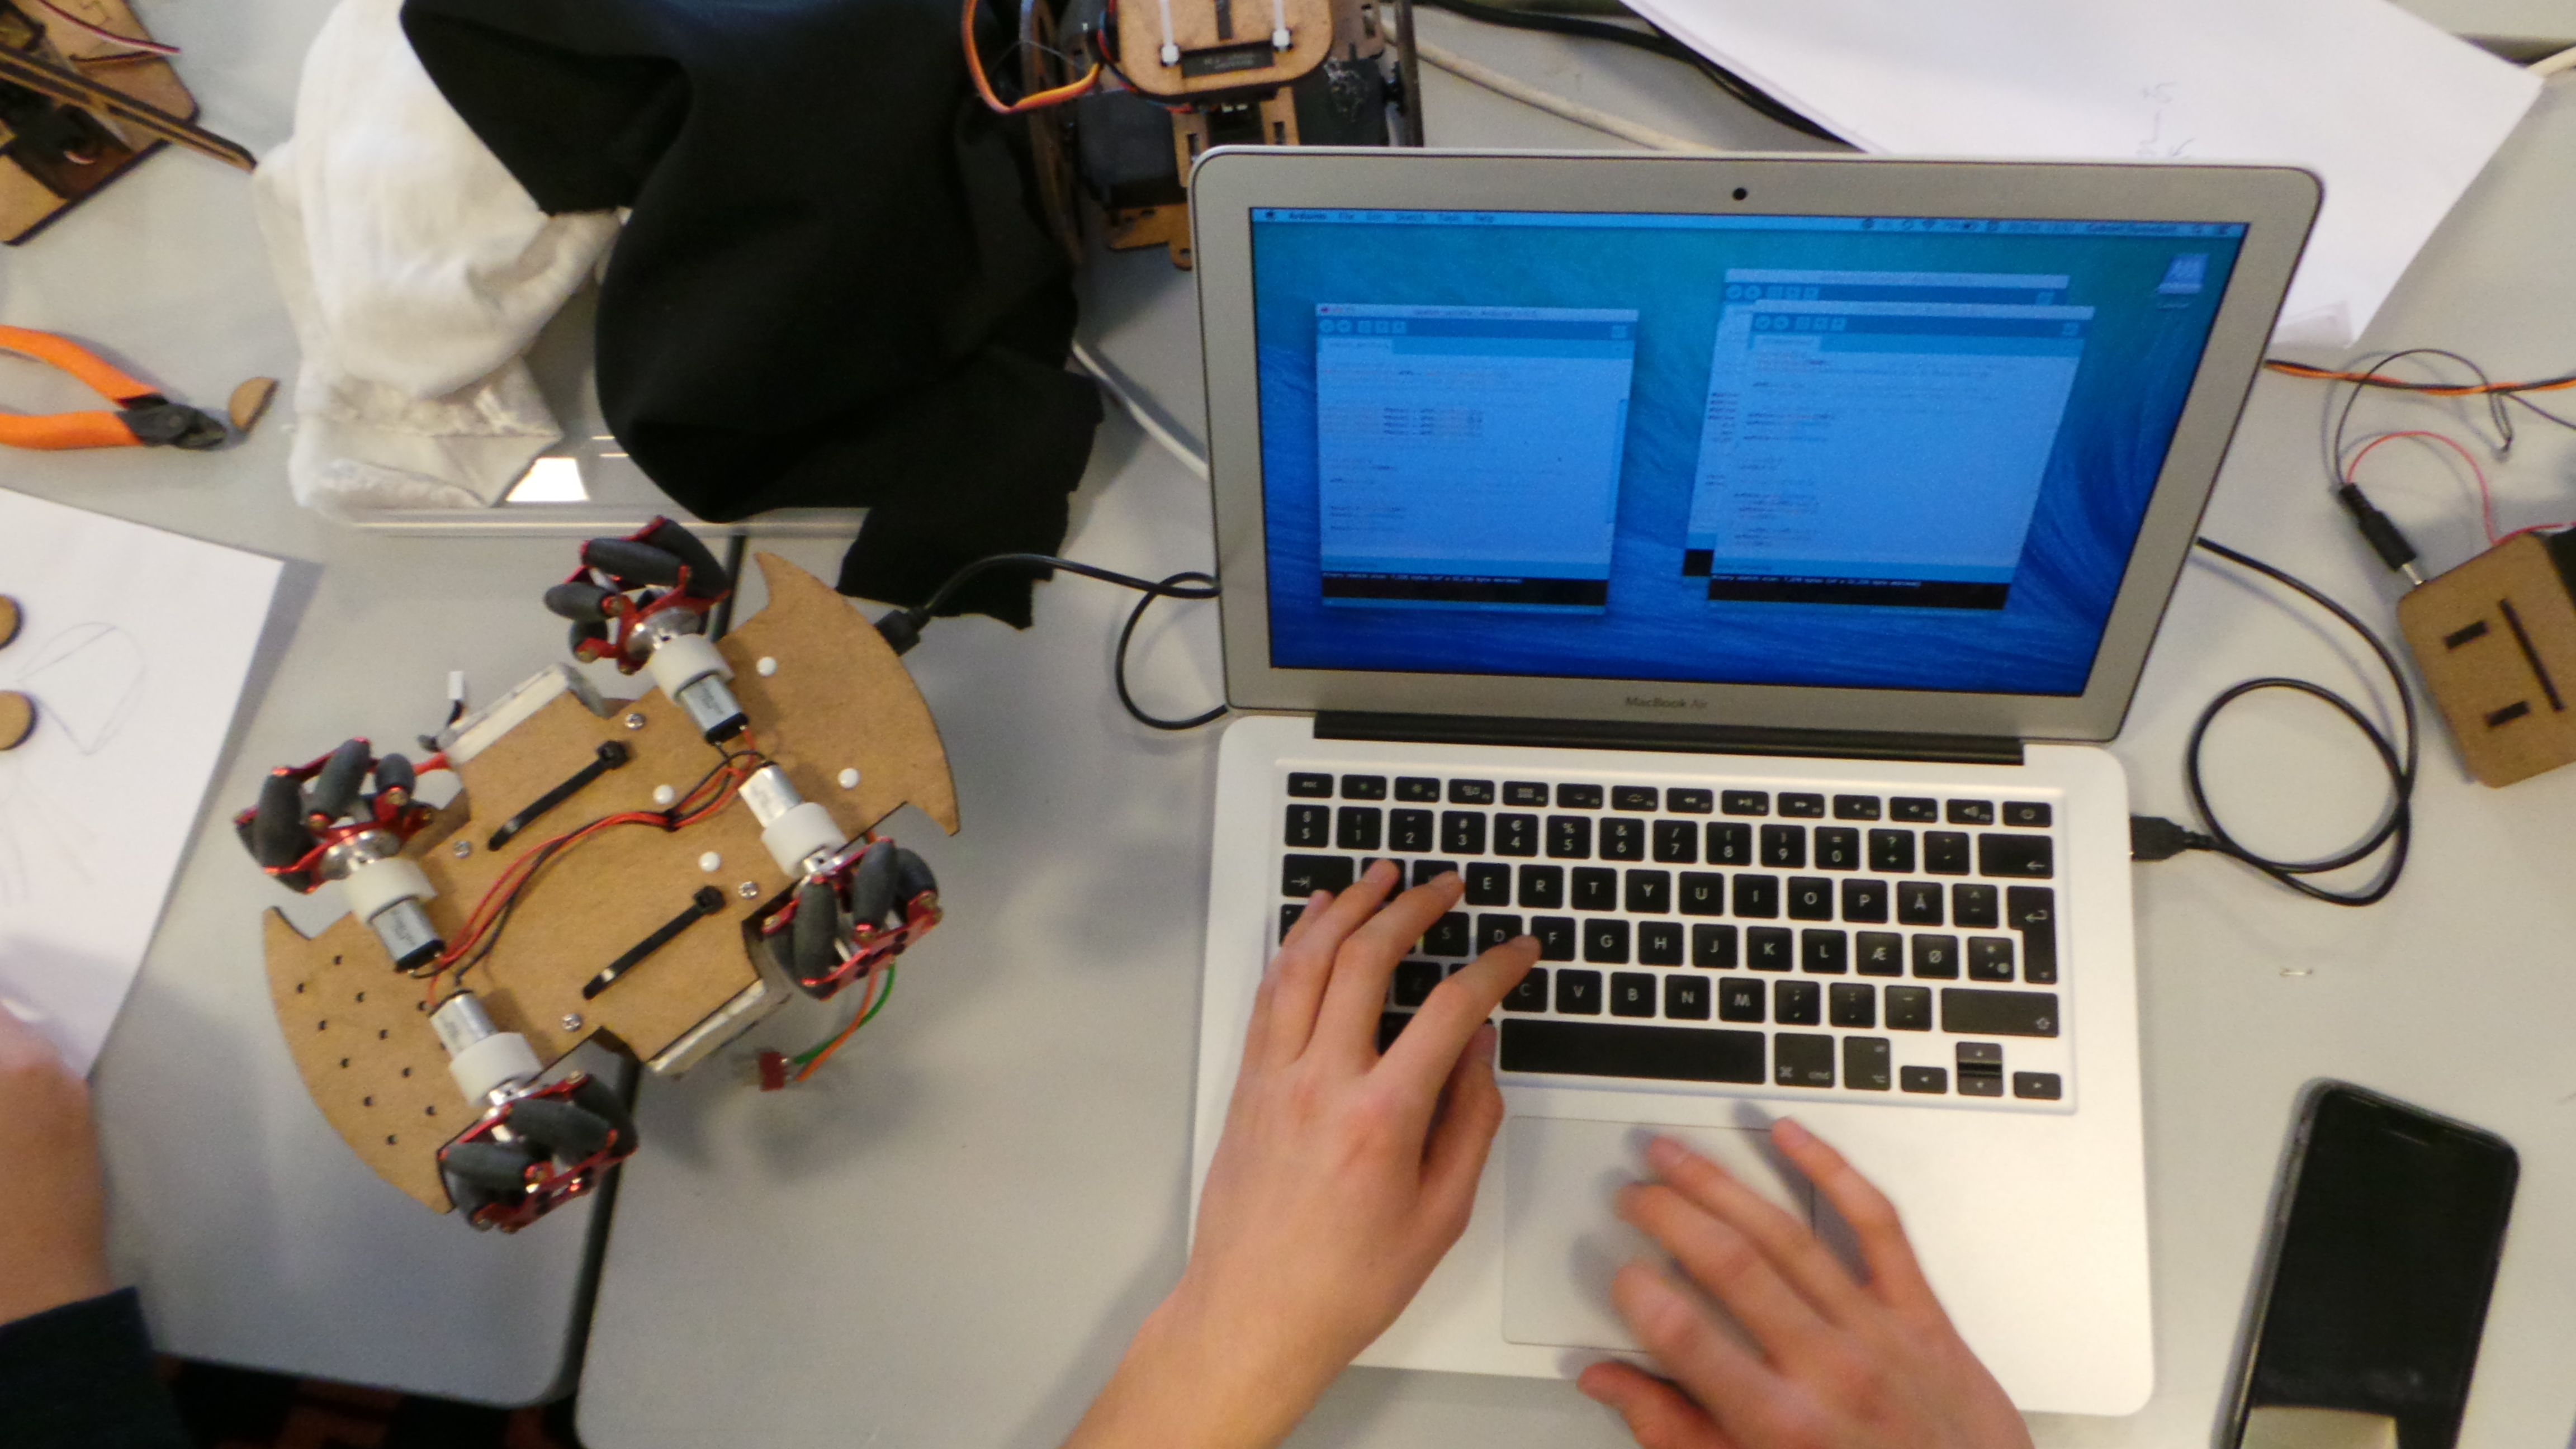 Creative programming and electronics workshops